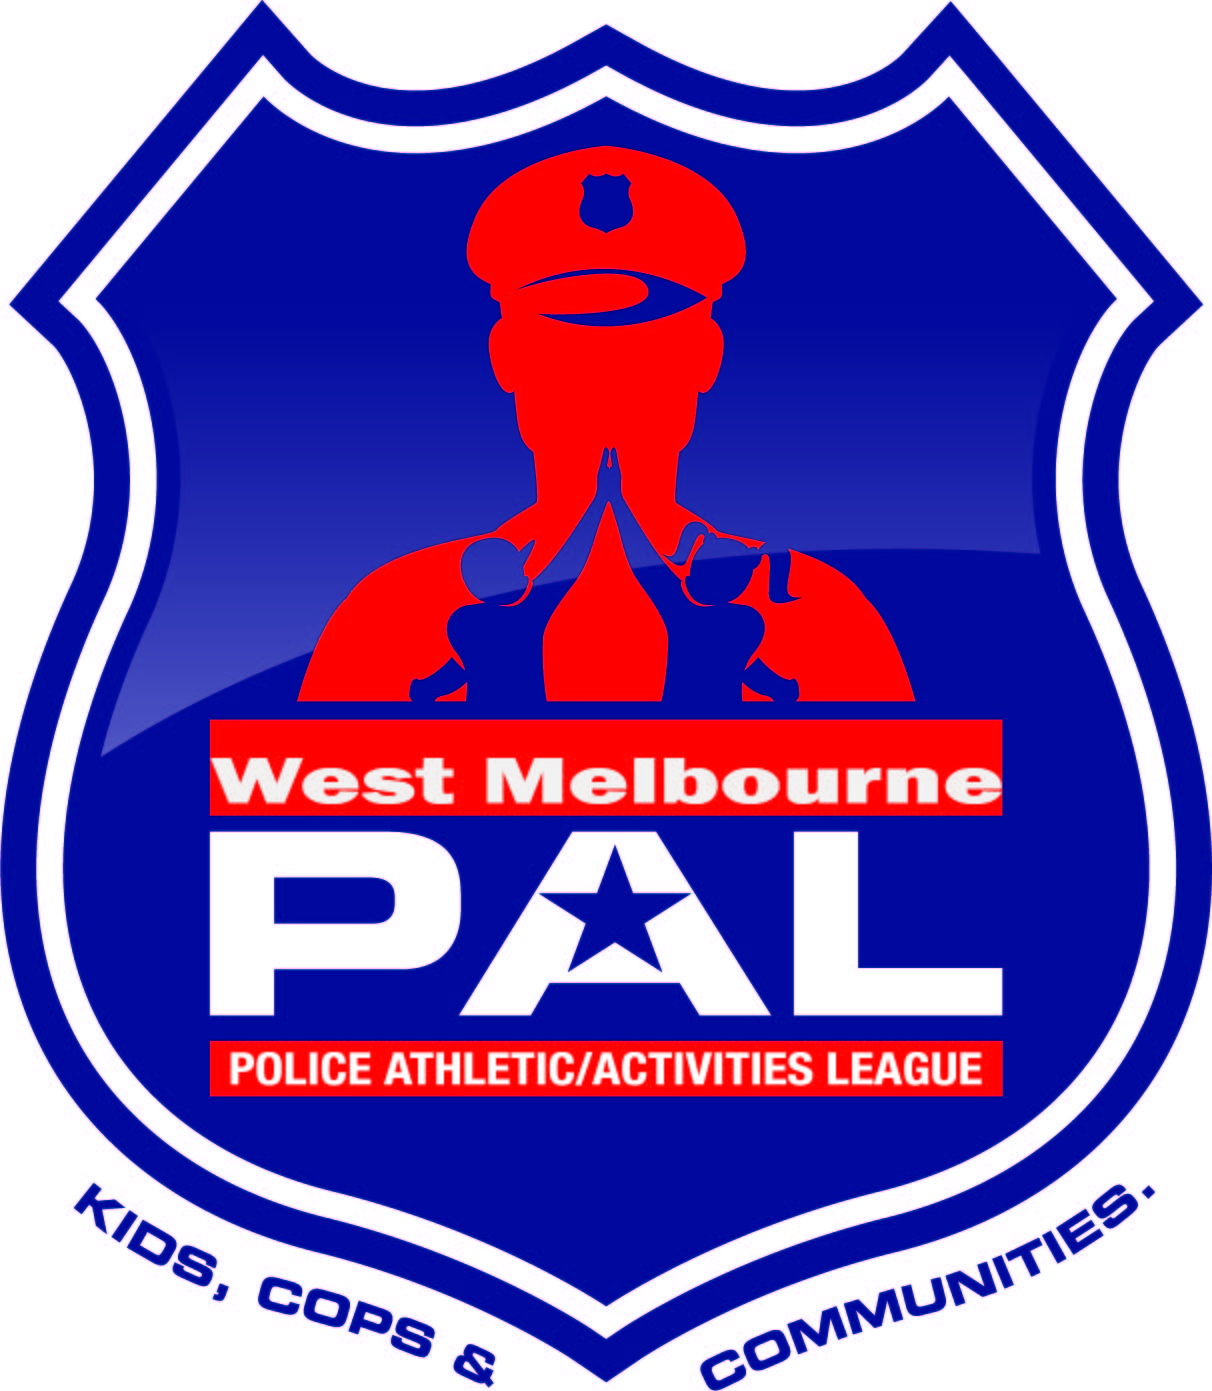 West Melbourne PAL LOGO.jpg